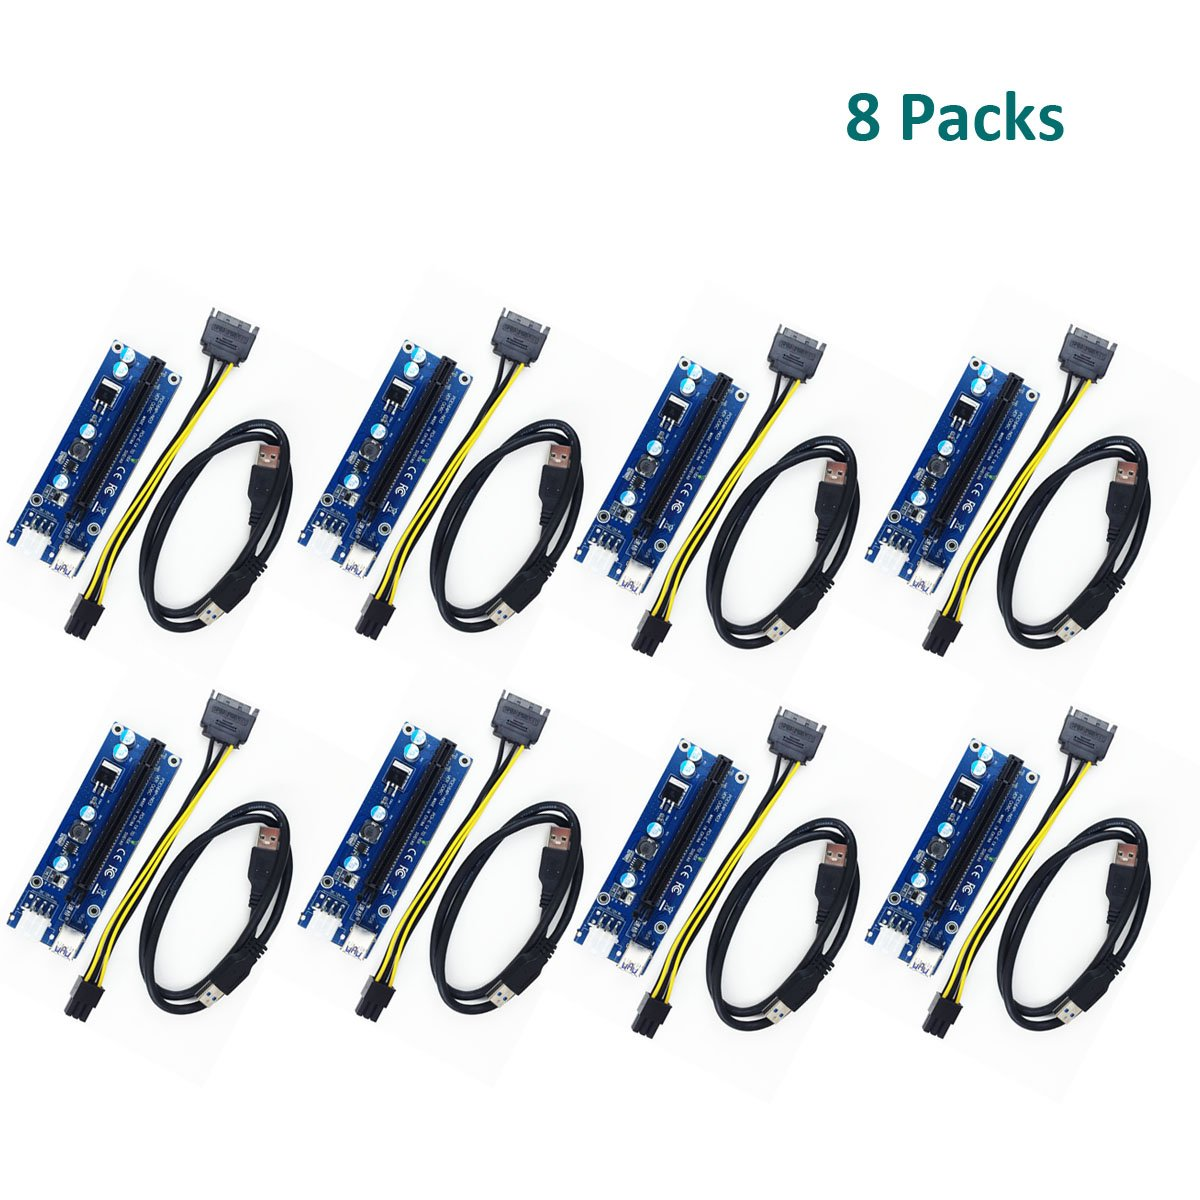 glotrends 8-Pack PCI-E Riser Board Adapter Card for Cryptocurrency Mining BTC ETH Rig Ethereum, USB 3.0 to PCI-E 16X, 70cm USB 3.0 Extension Cable, 6-Pin PCI-E SATA Power Cable (SQKZ-C8T)